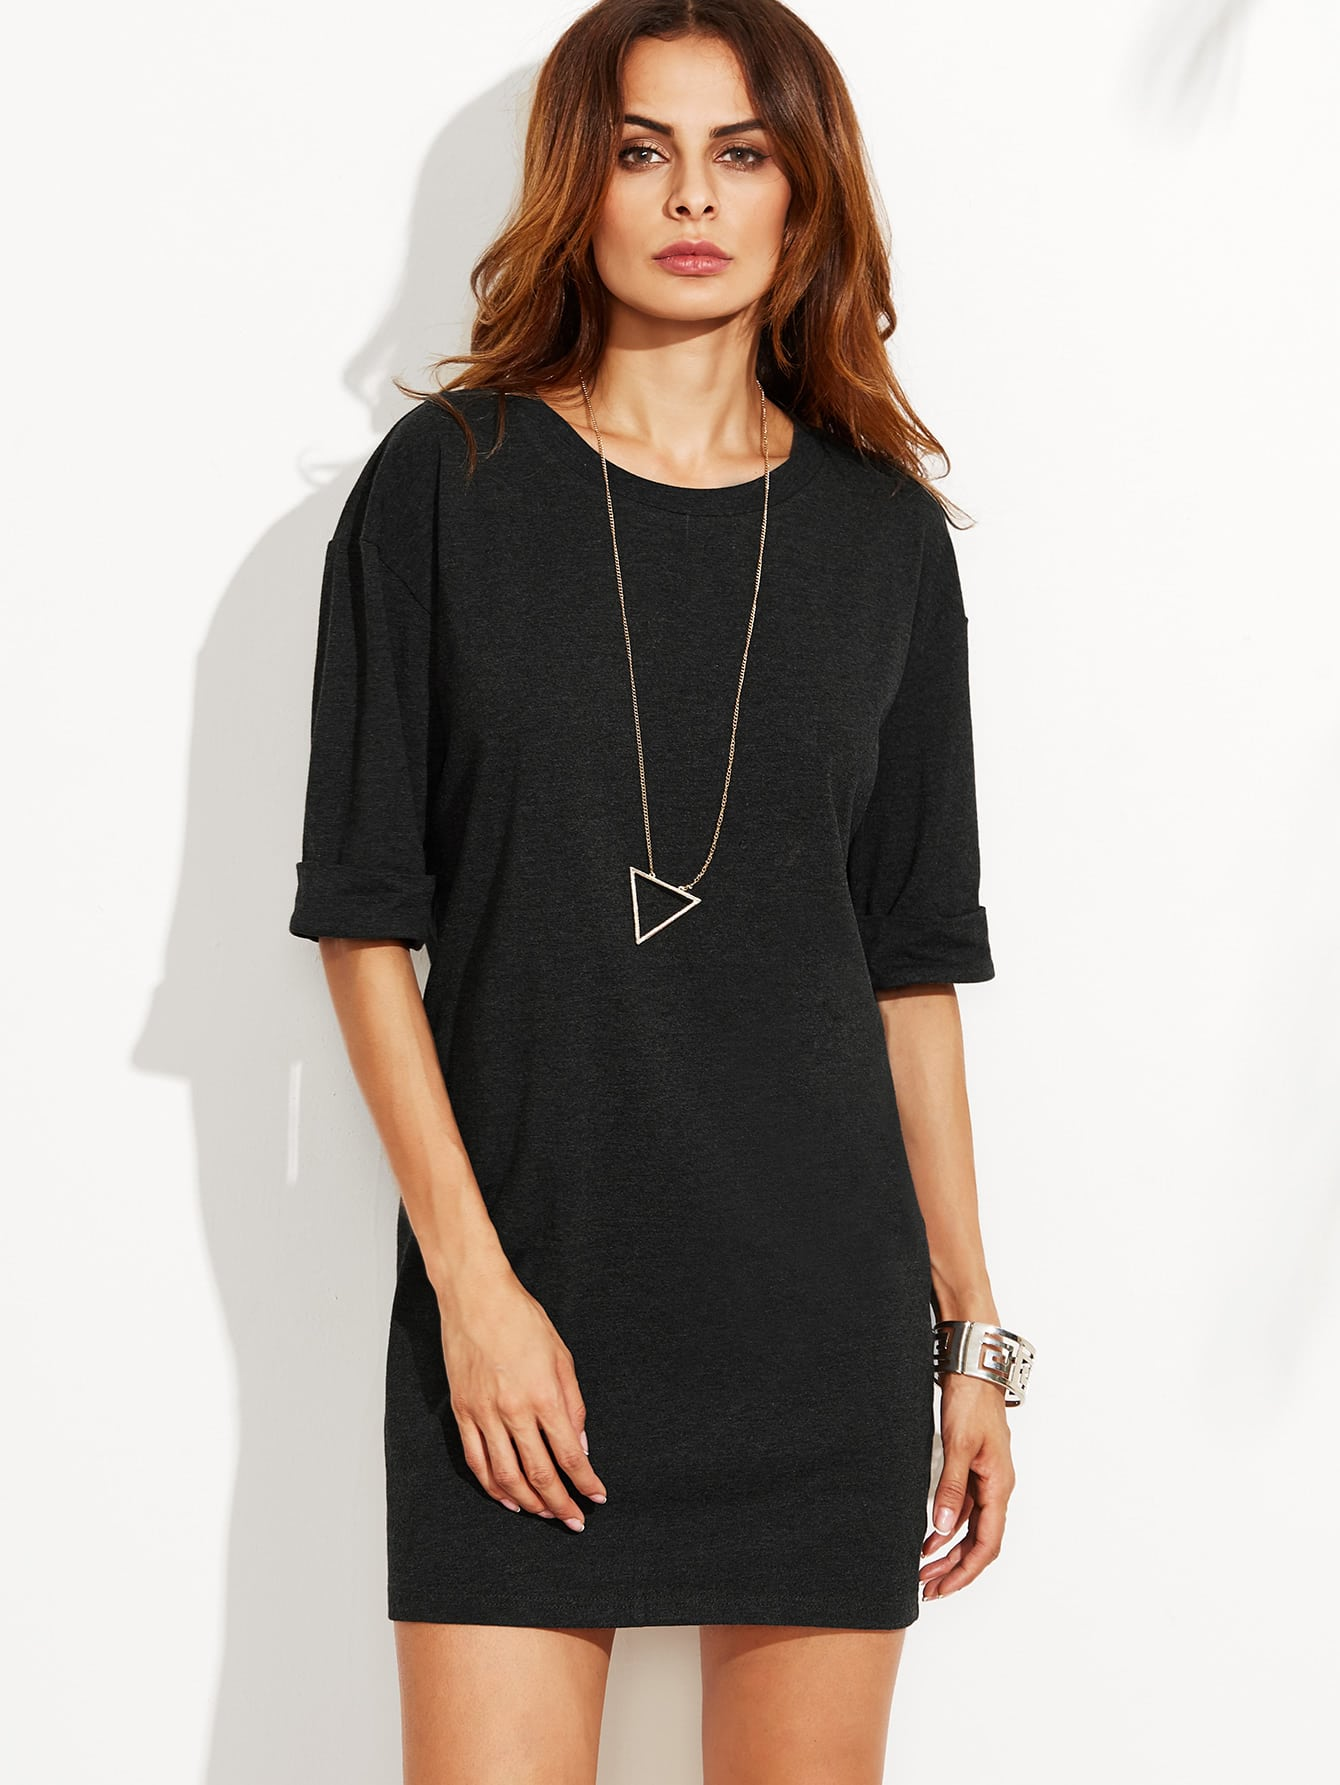 Heather Grey Drop Shoulder Roll Sleeve Tee DressHeather Grey Drop Shoulder Roll Sleeve Tee Dress<br><br>color: Grey<br>size: L,M,S,XS